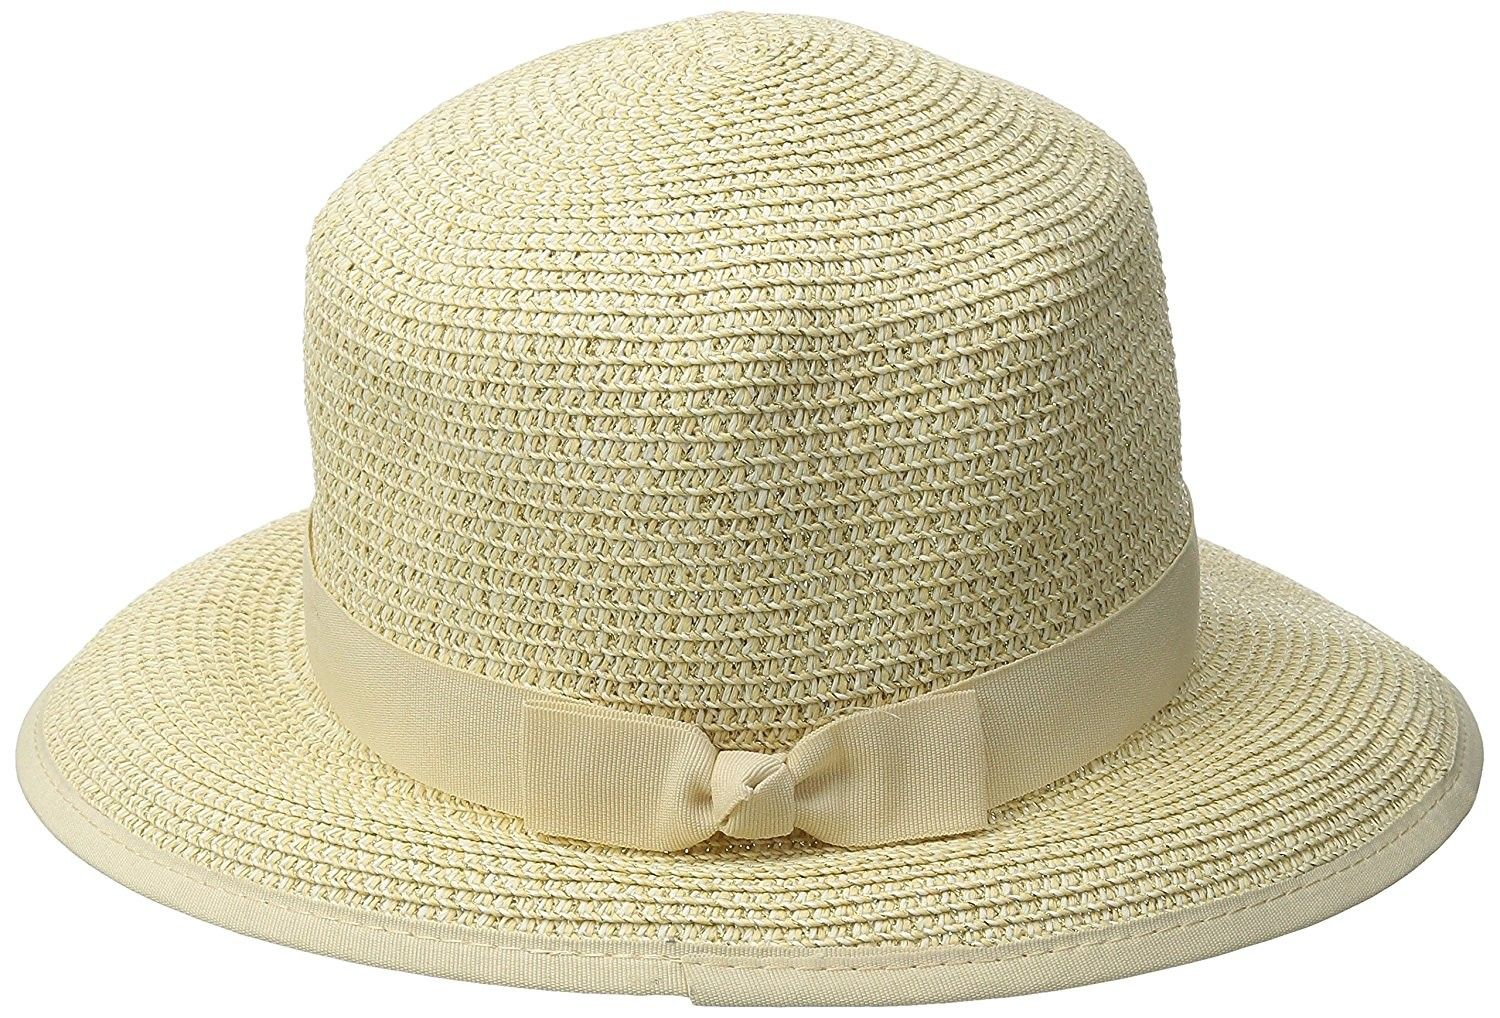 35a30796e360f Women s Pitch Perfect Straw Sun Hat- Rated UPF 50+ For Max Sun Protection -